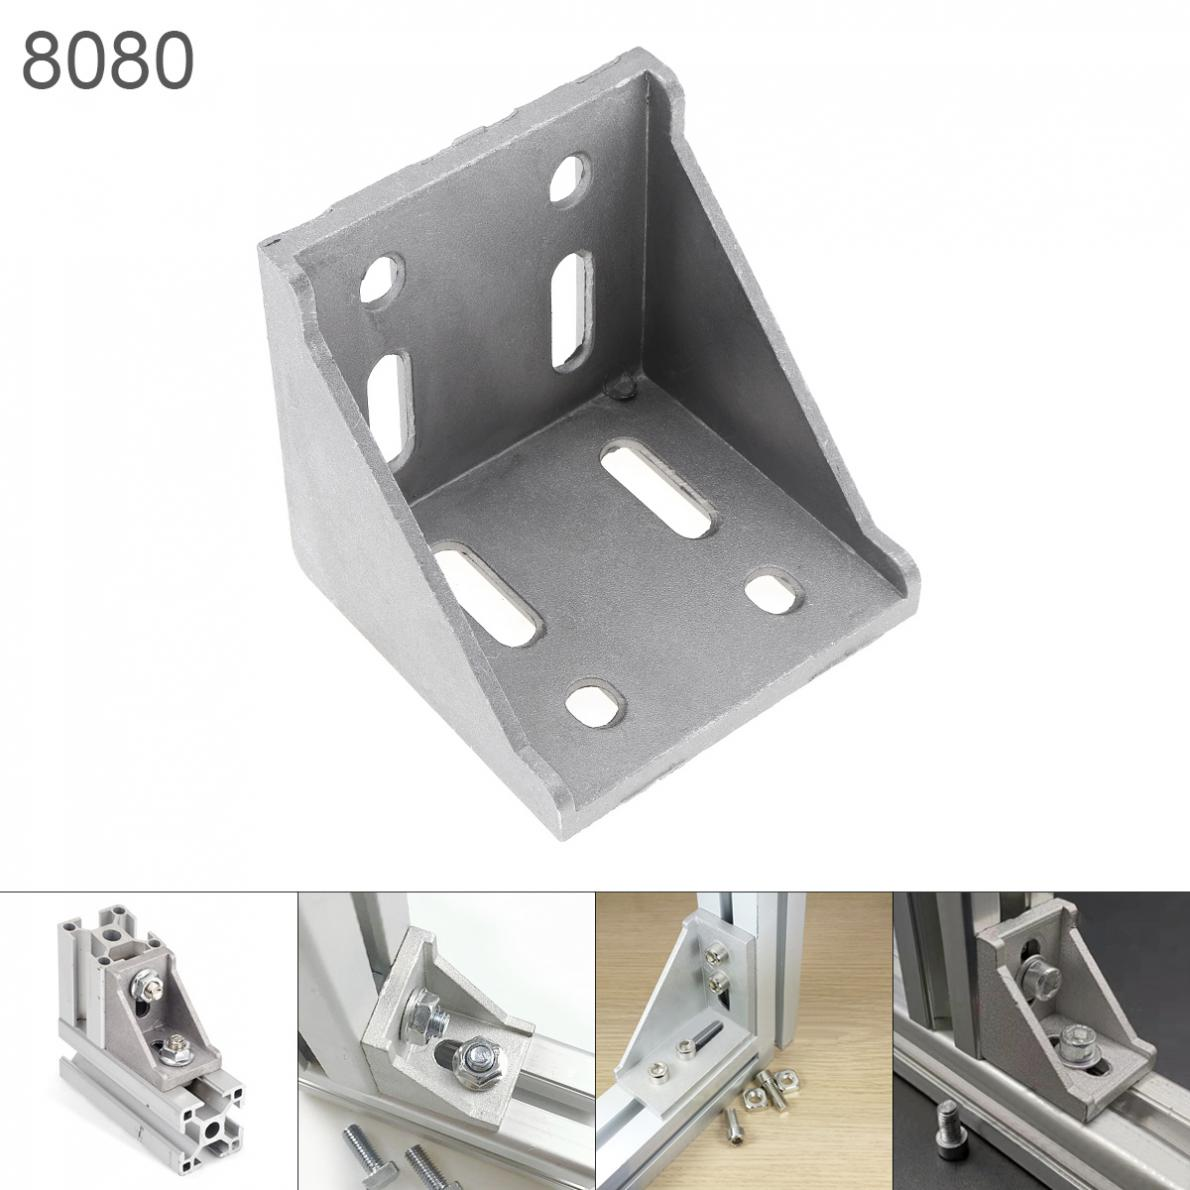 Gray <font><b>8080</b></font> Aluminum Corner L Shape Right Angle Support Connector <font><b>Extrusion</b></font> Industrial Aluminum Profile image